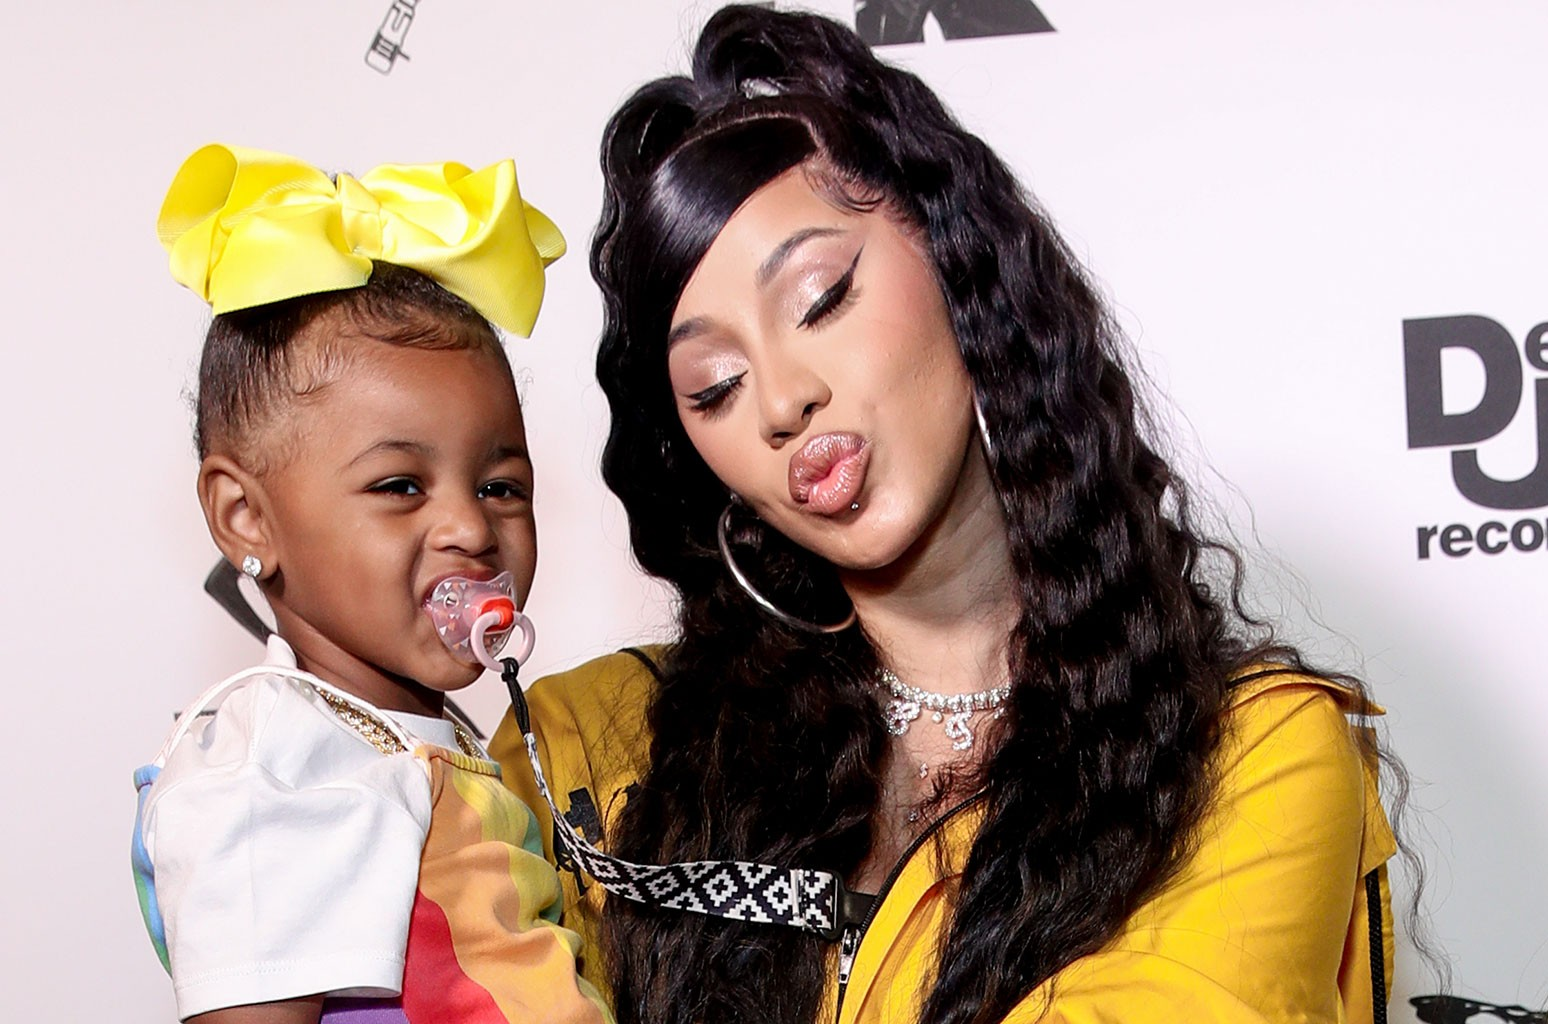 See the Extravagant Gift Cardi B Gave Daughter Kulture For Her 3rd Birthday